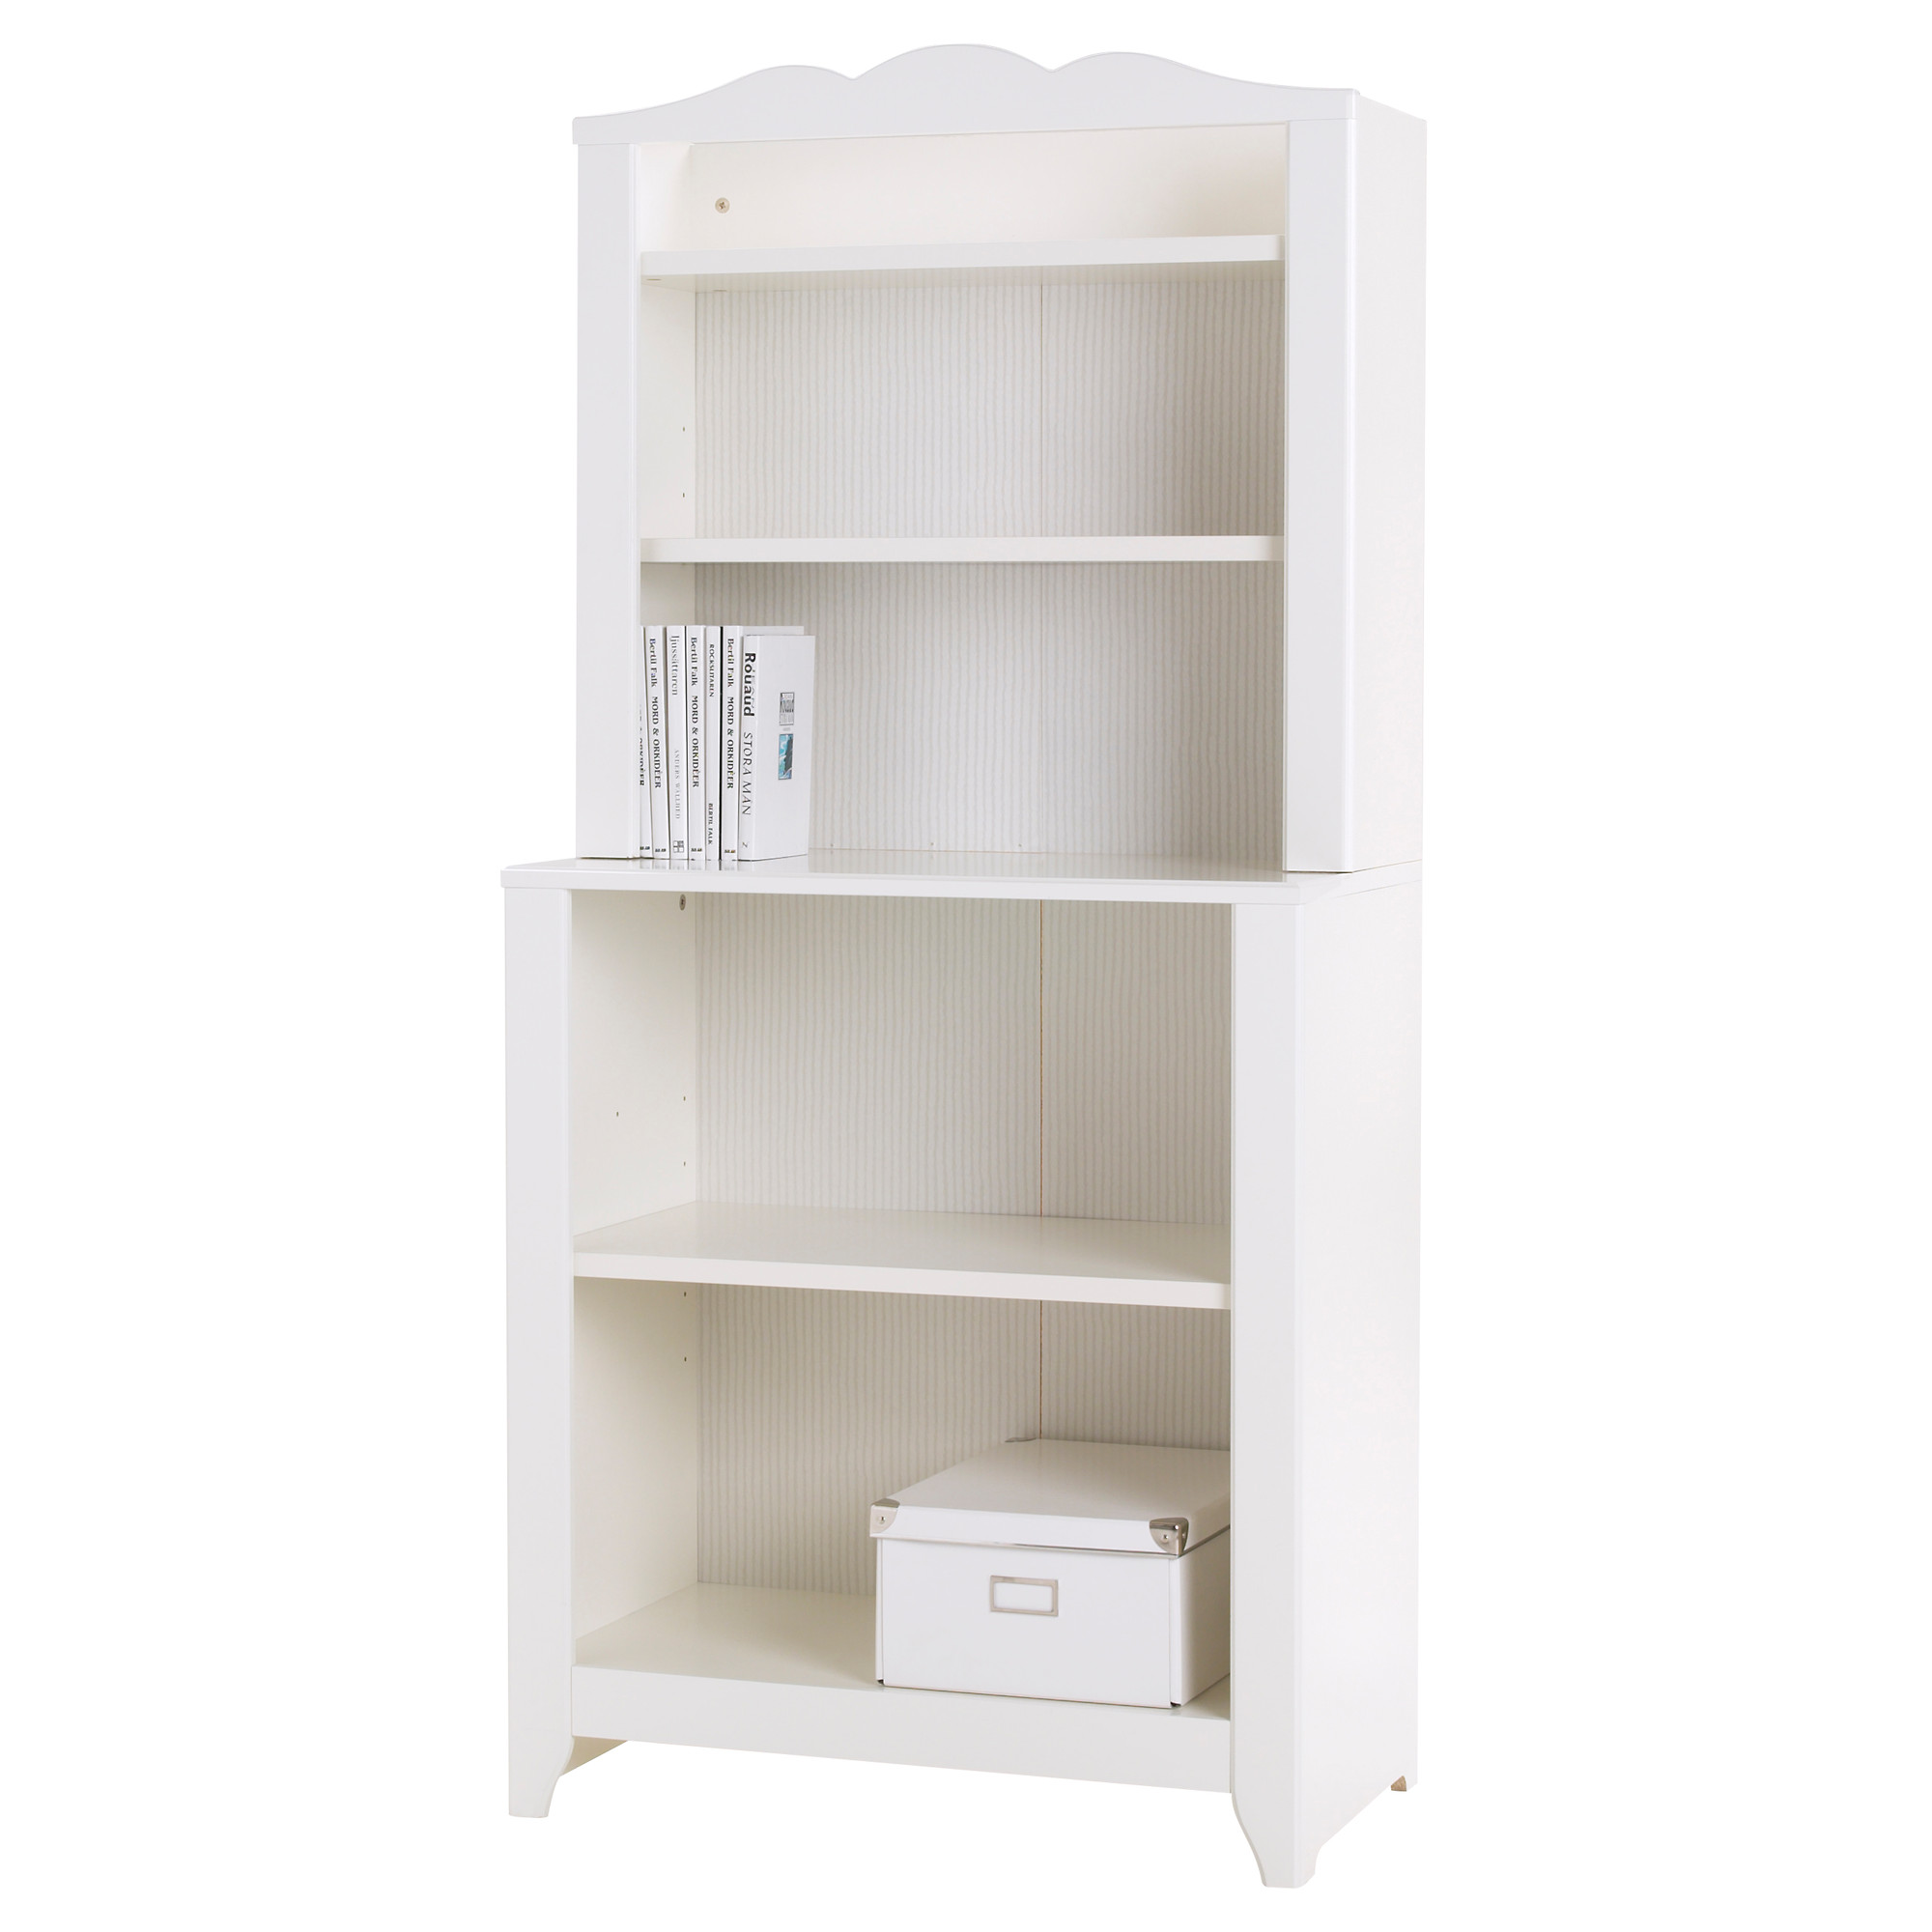 lovely ikea toy storage in white filled with white books and white box